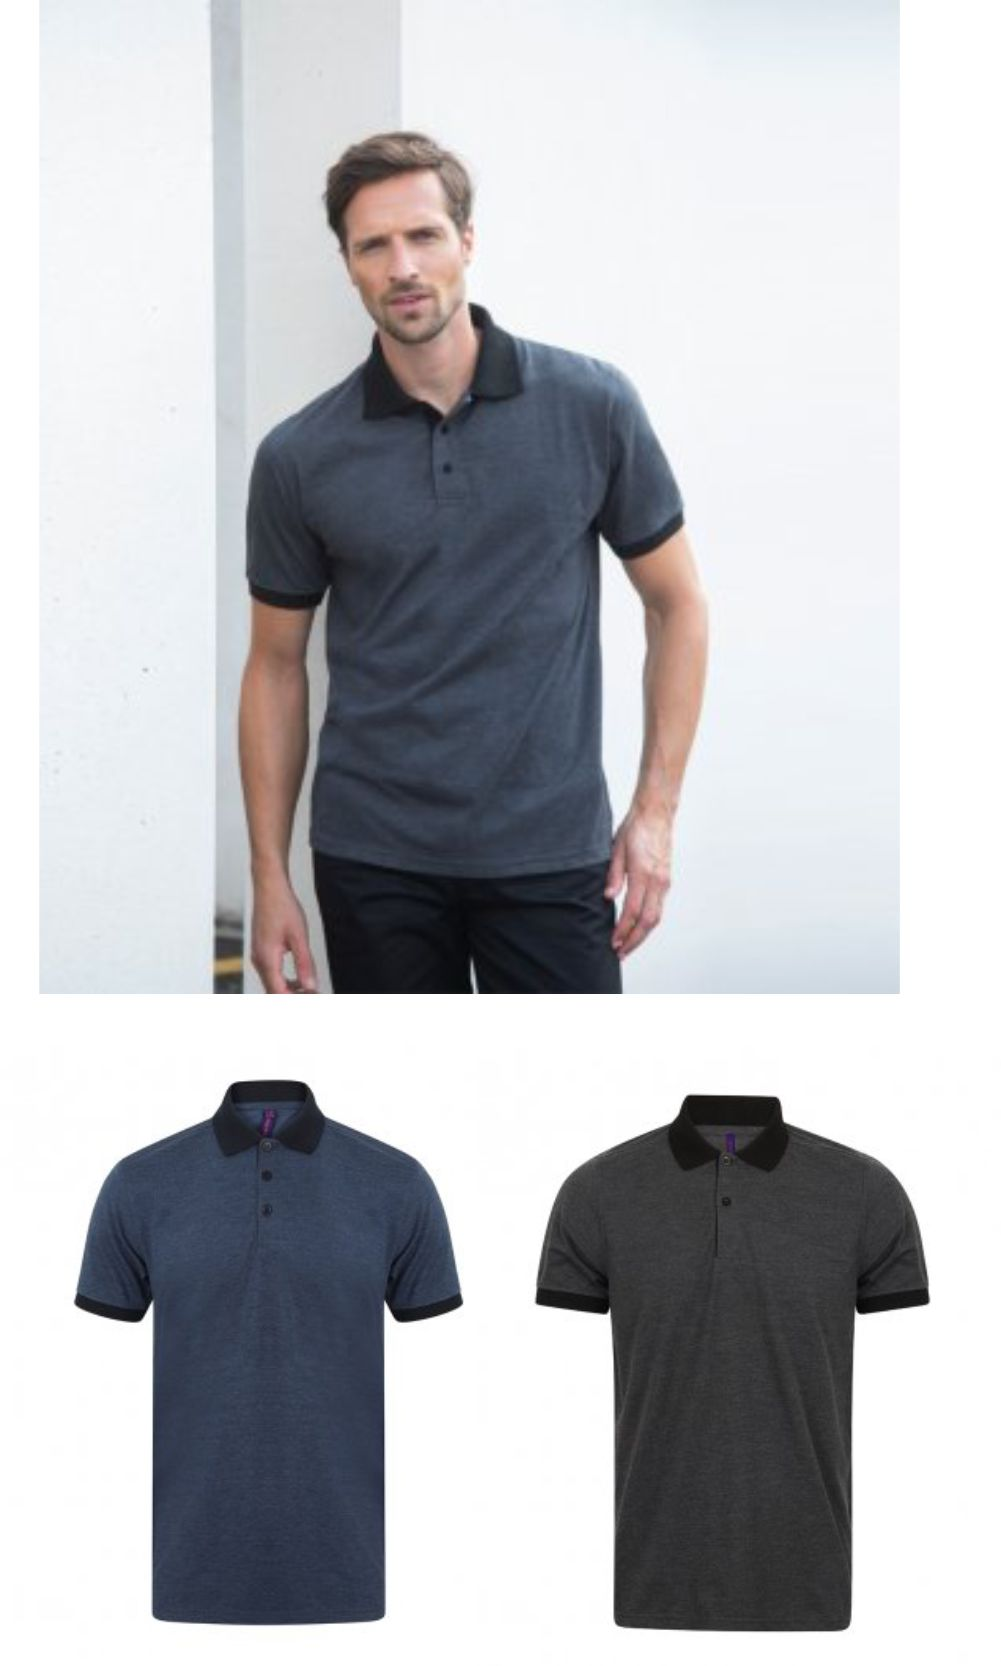 Henbury H490 Contrast Tr-Blend Jersey Polo Shirt